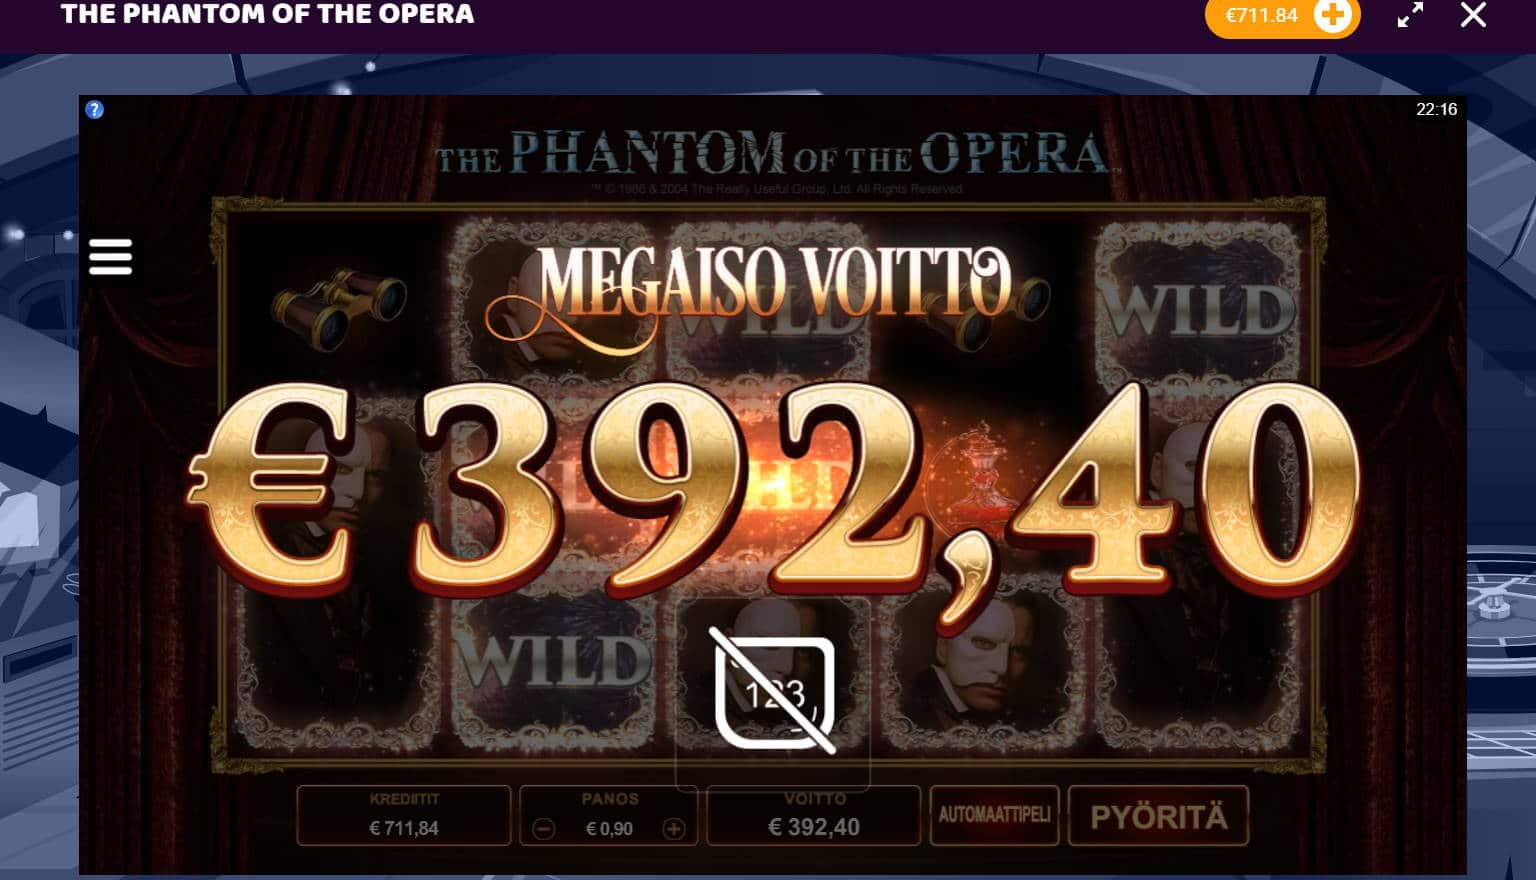 The Phanthom of the Opera Slot big win picture